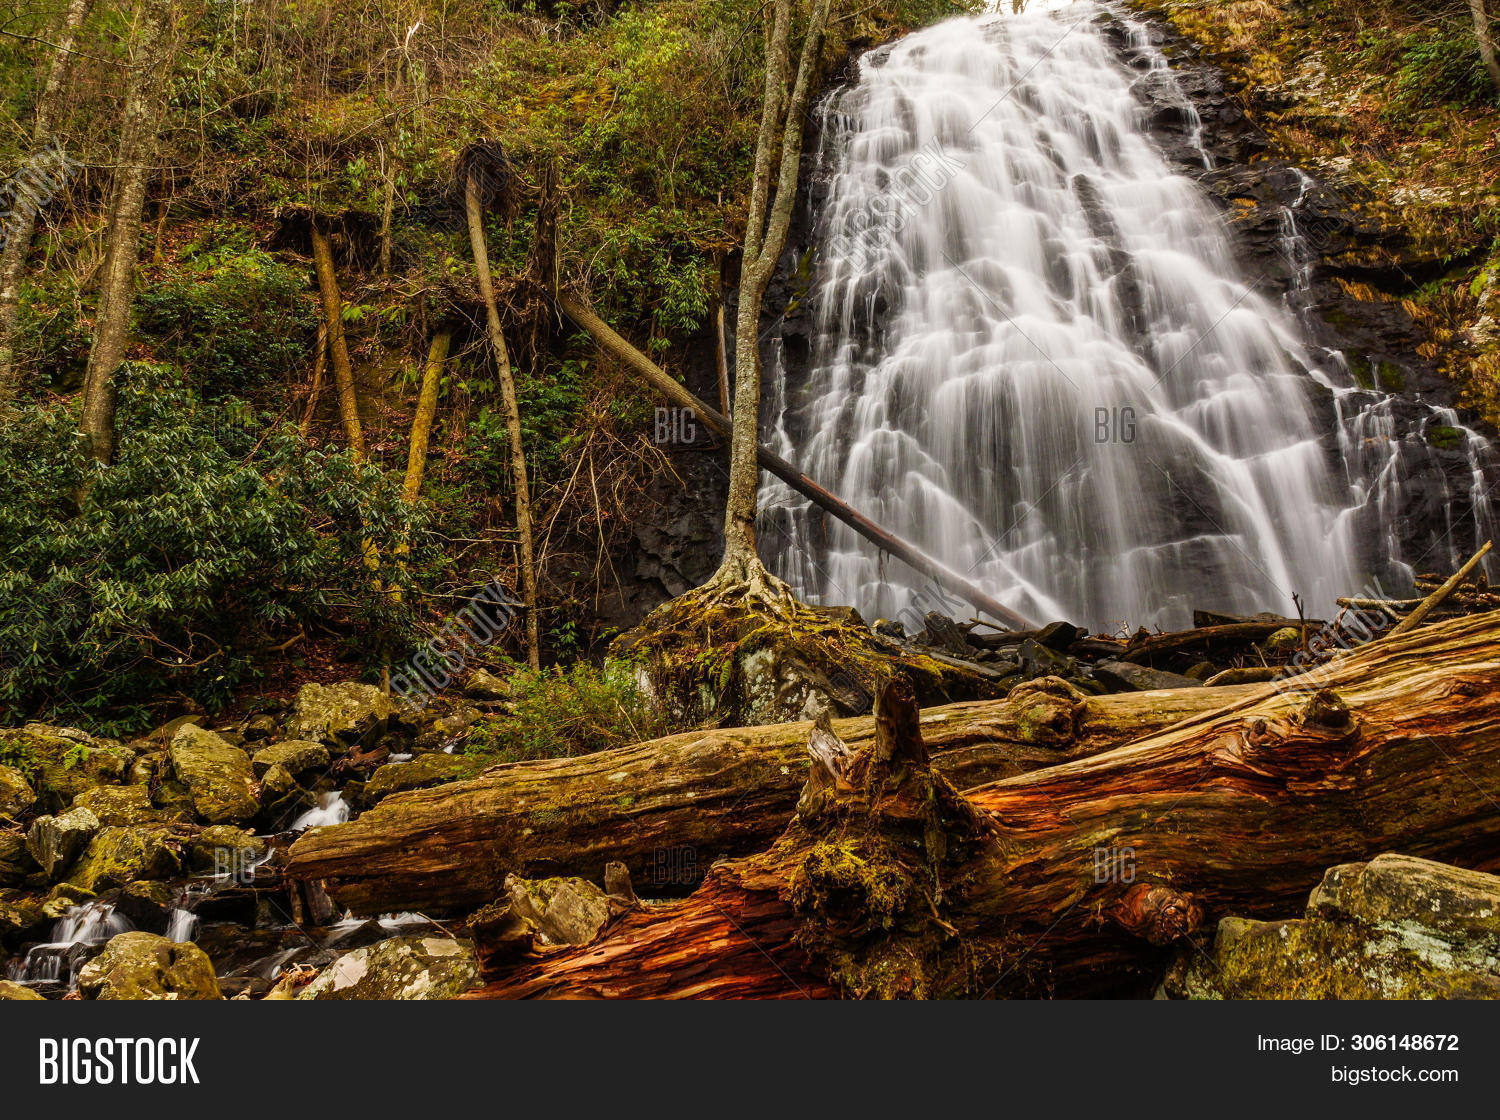 America,Blue,Carolina,Interior,North,Parkway,Ridge,States,United,horizontal,lands,natural,nature,outdoors,outside,park,public,scenic,tourism,usa,vacation,waterfall